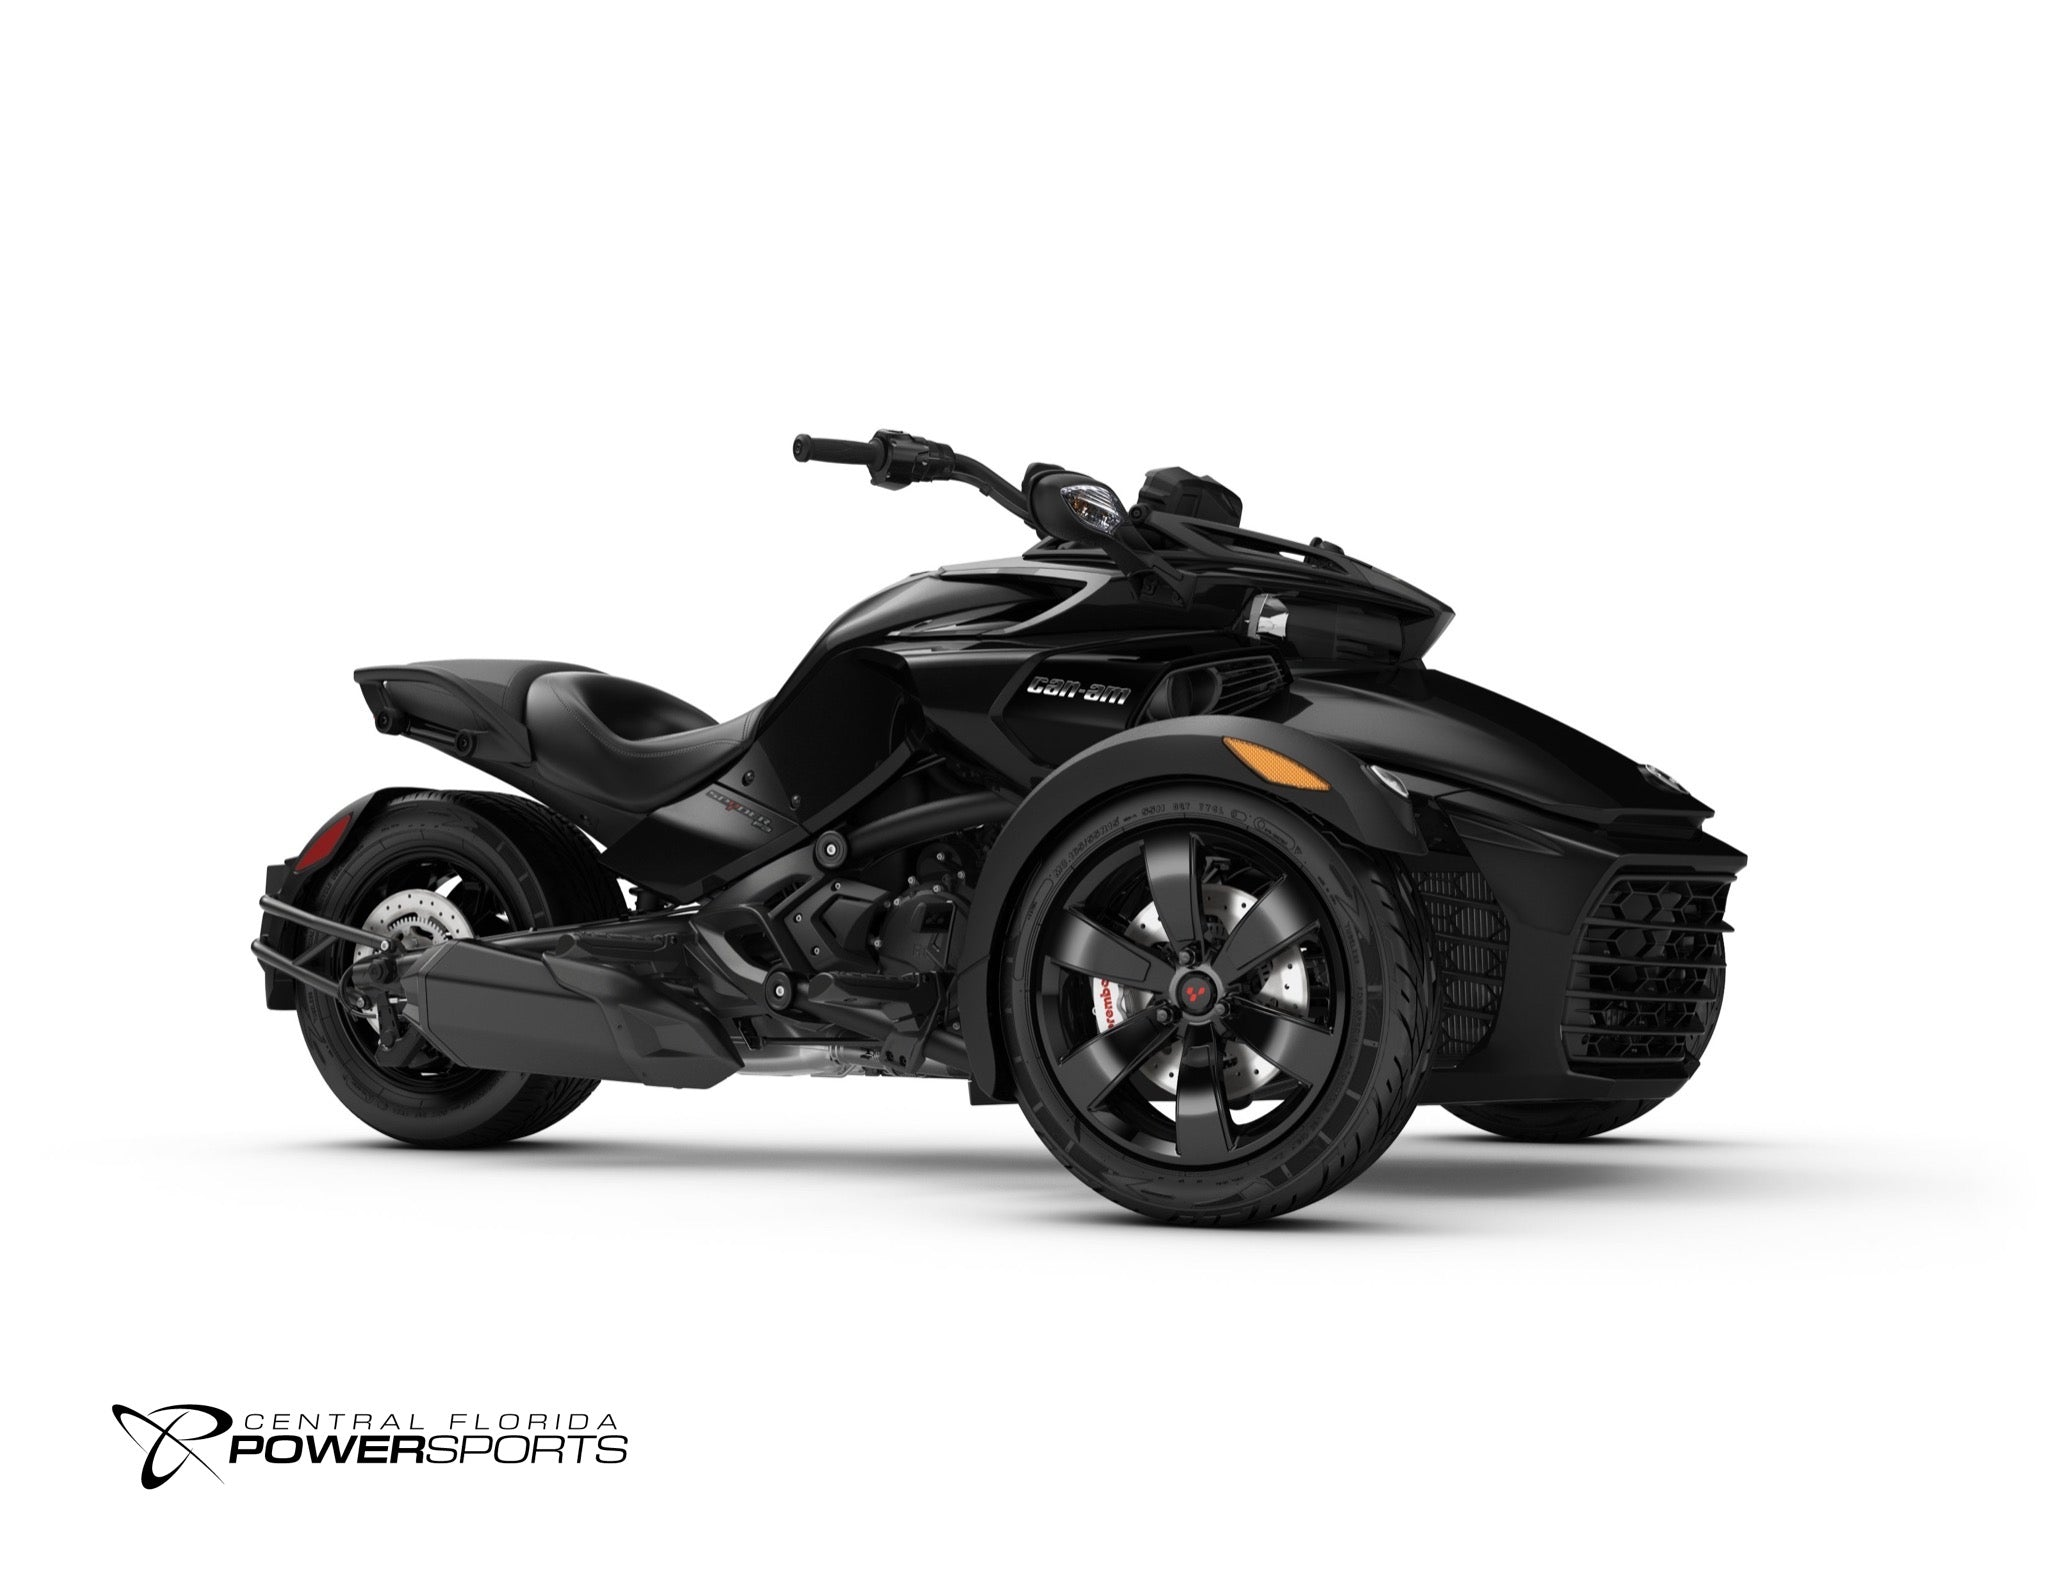 2018 Can Am Spyder F3 Se6 Central Florida Powersports